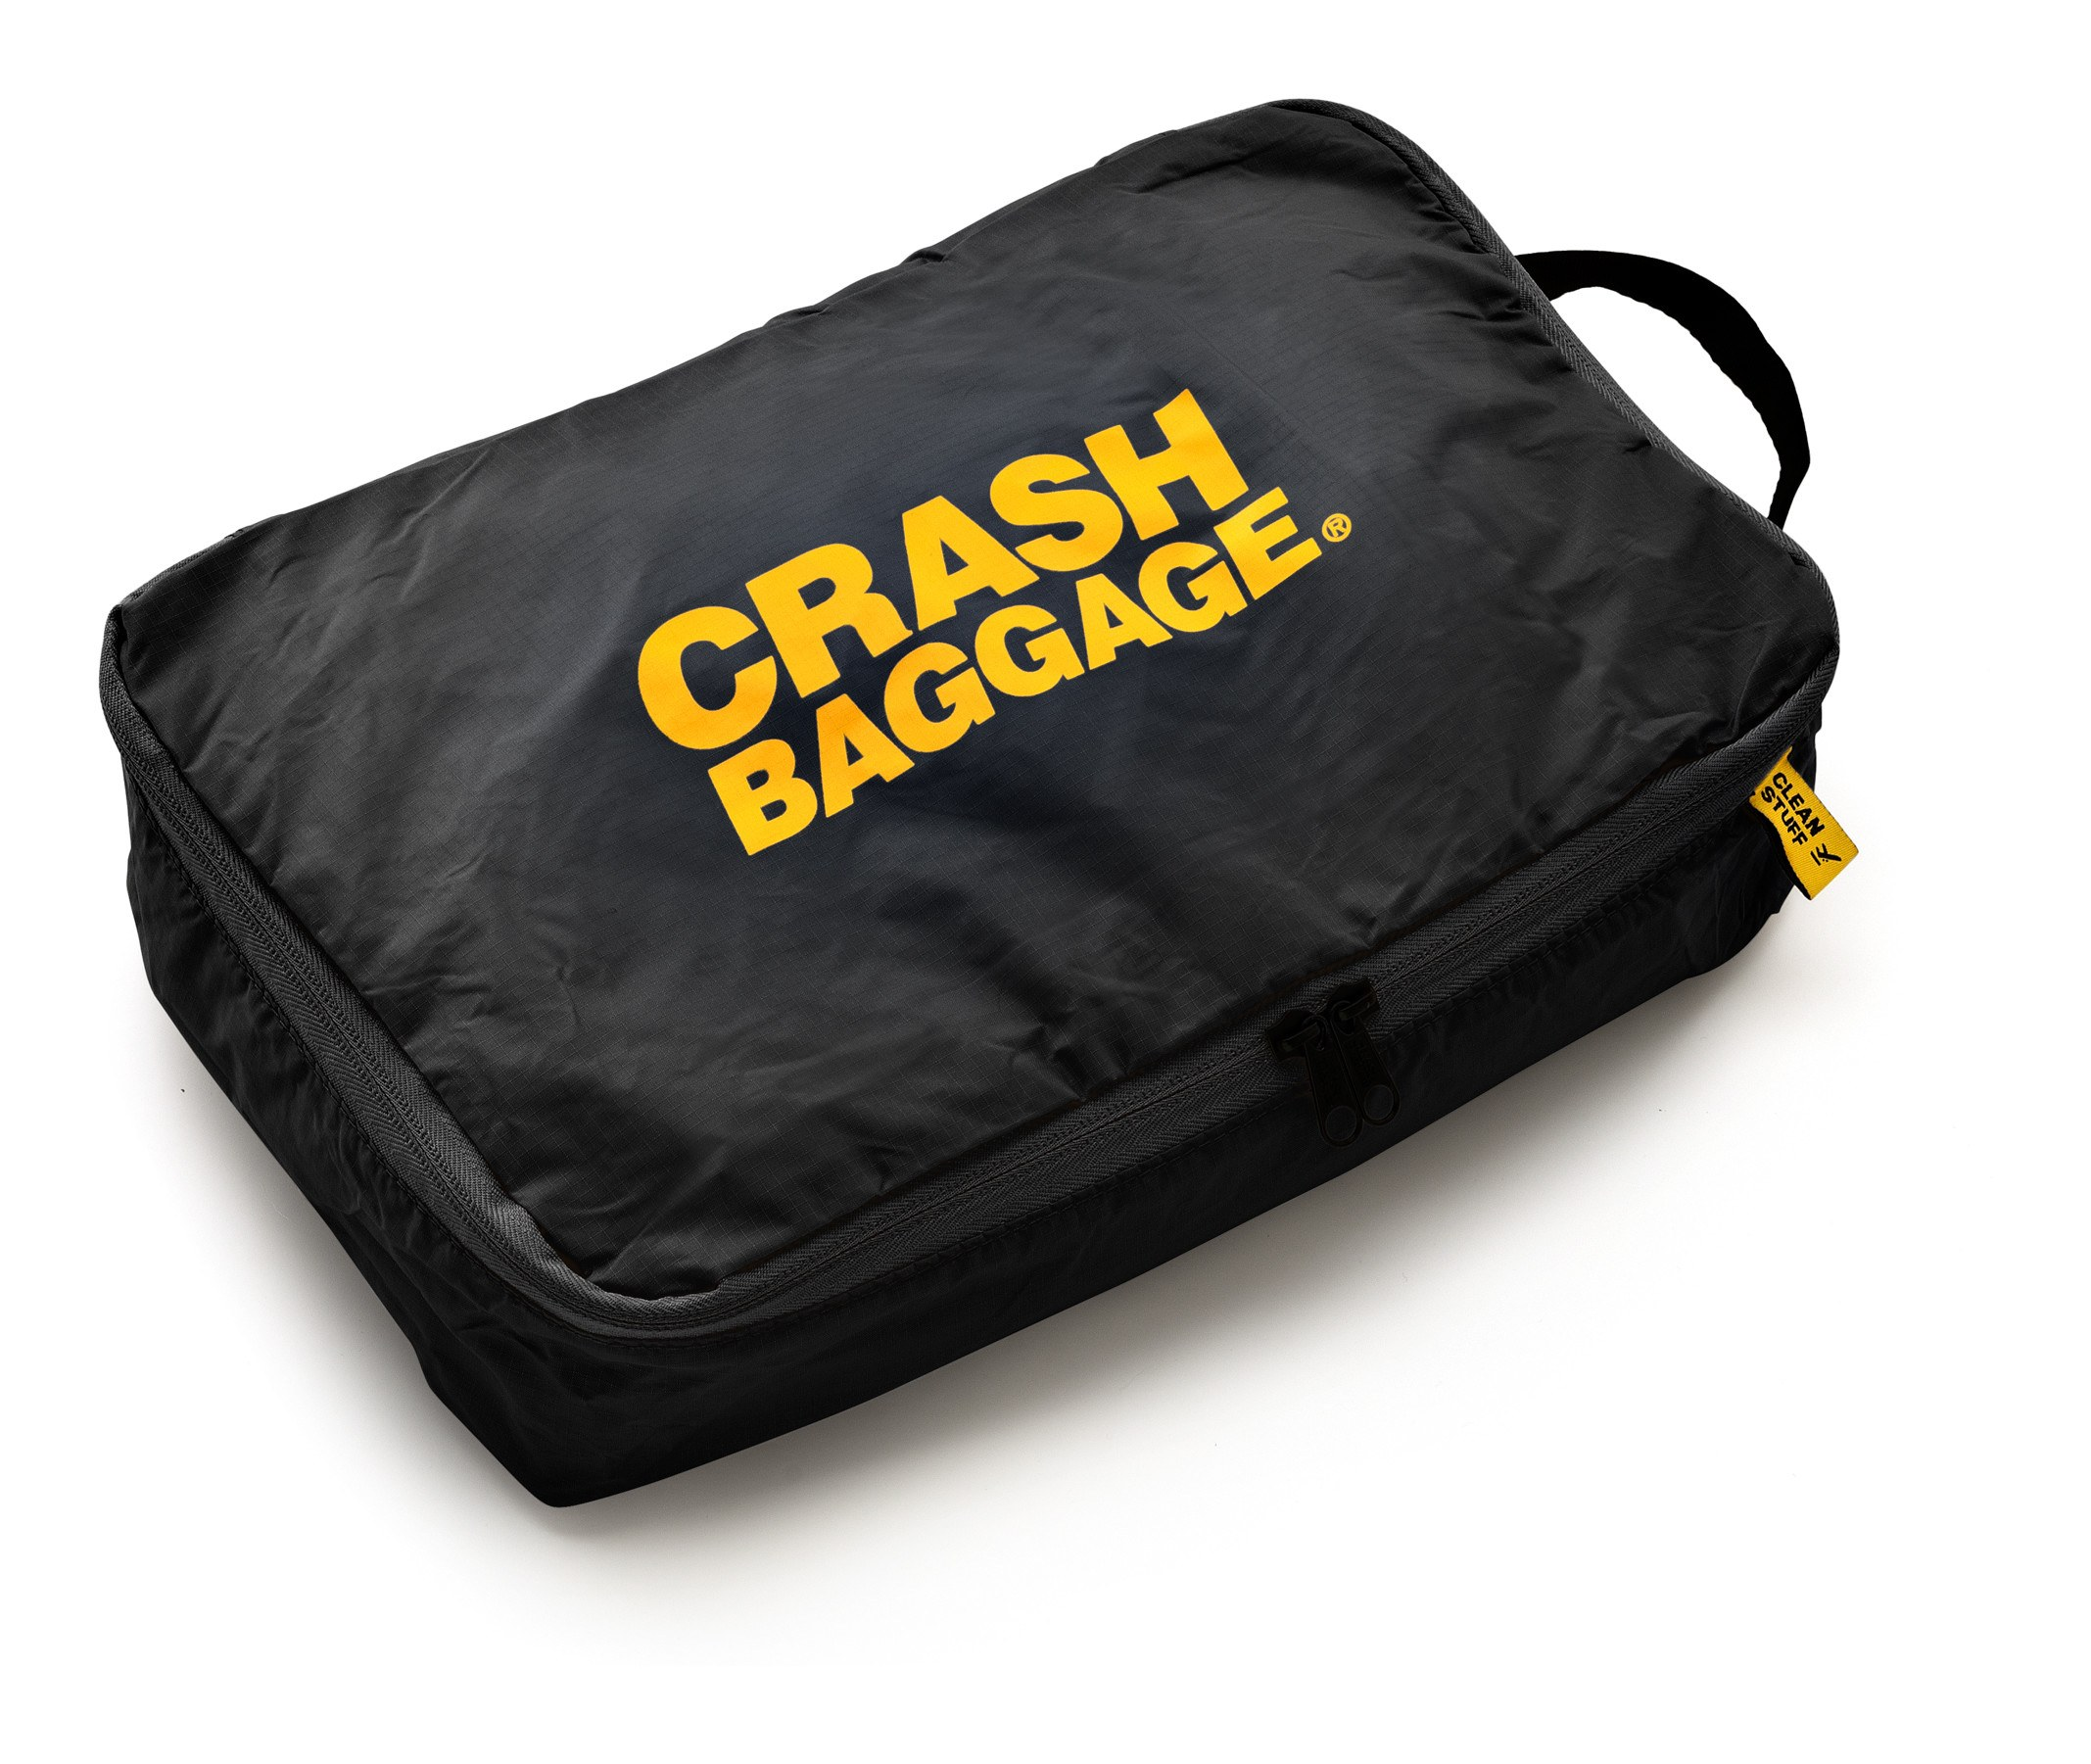 Organizer Crash Baggage średni Black - 55620